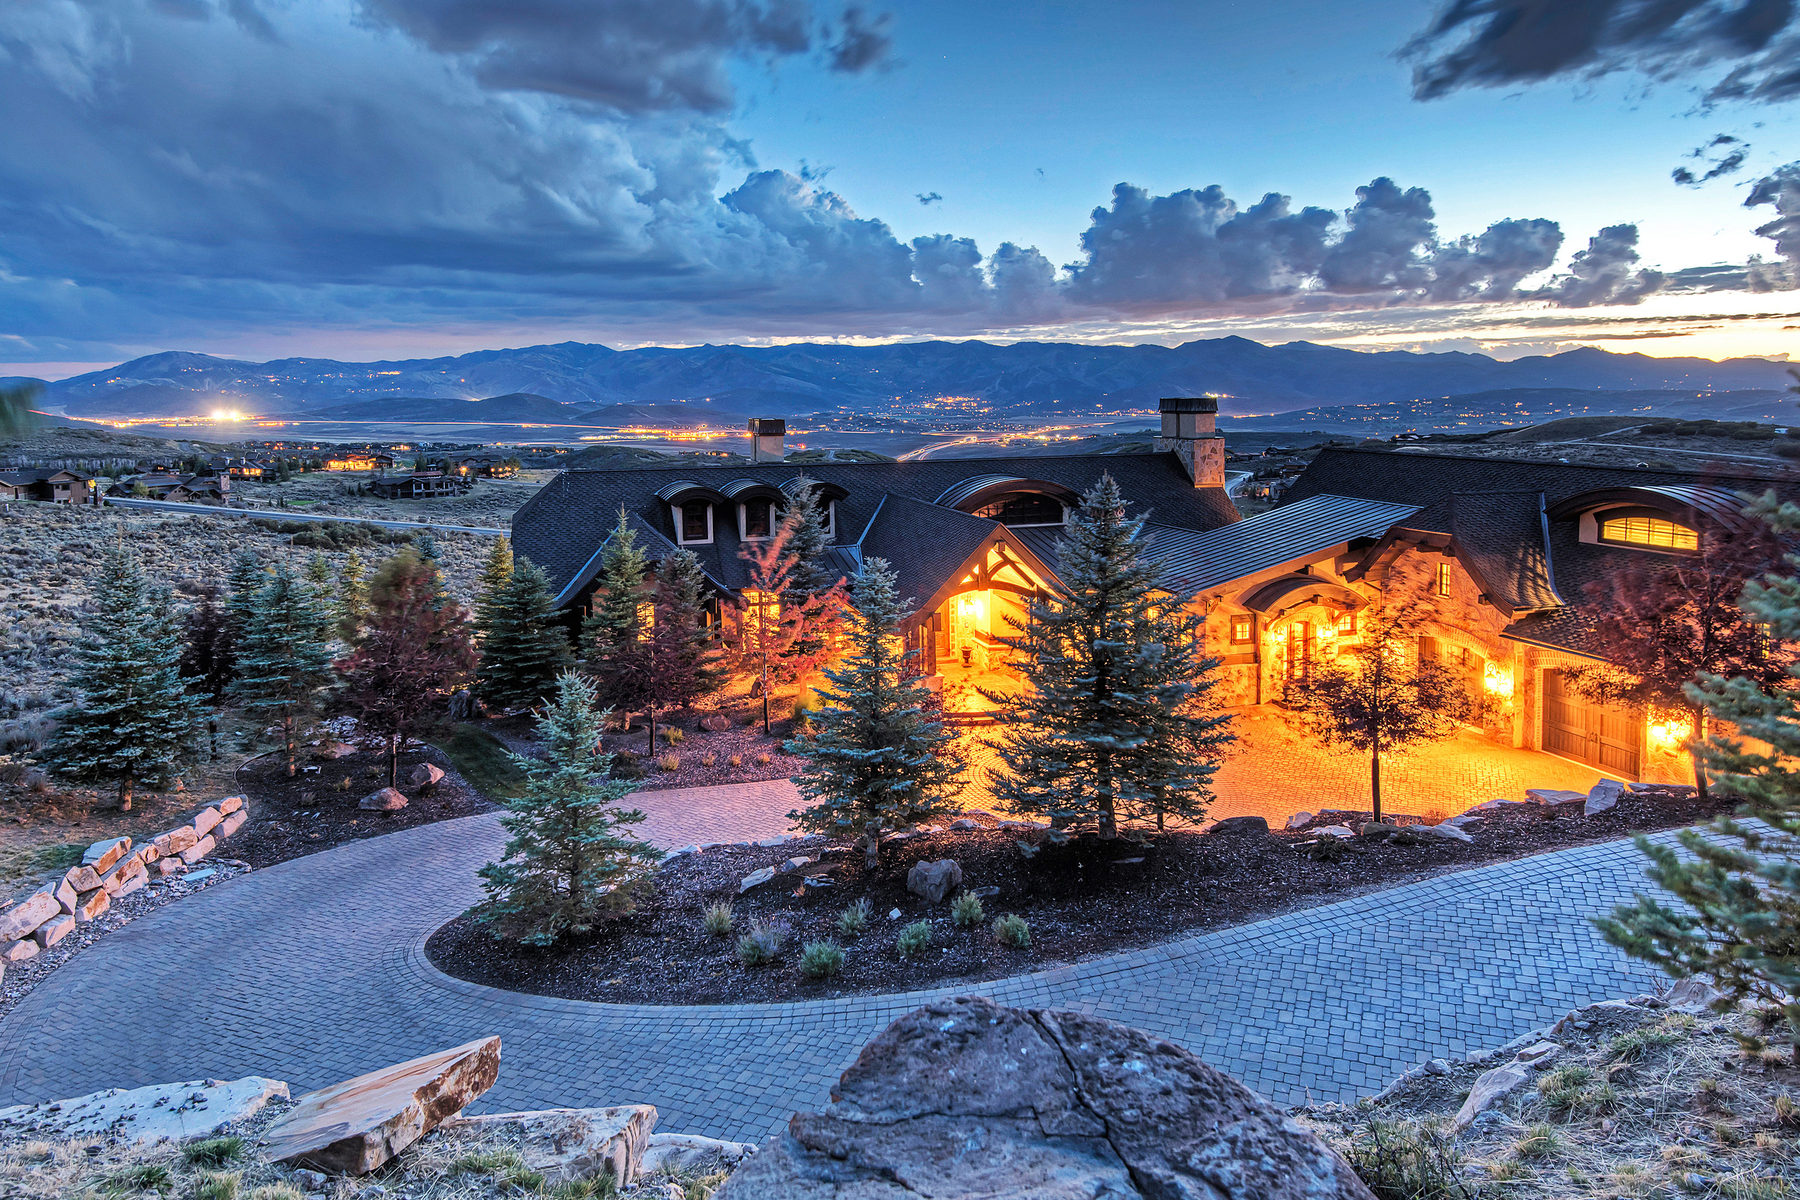 独户住宅 为 销售 在 A Timeless and Elegant Home with Forever Ski Hill Views 3724 Central Pacific Trl Park City, 犹他州 84098 美国